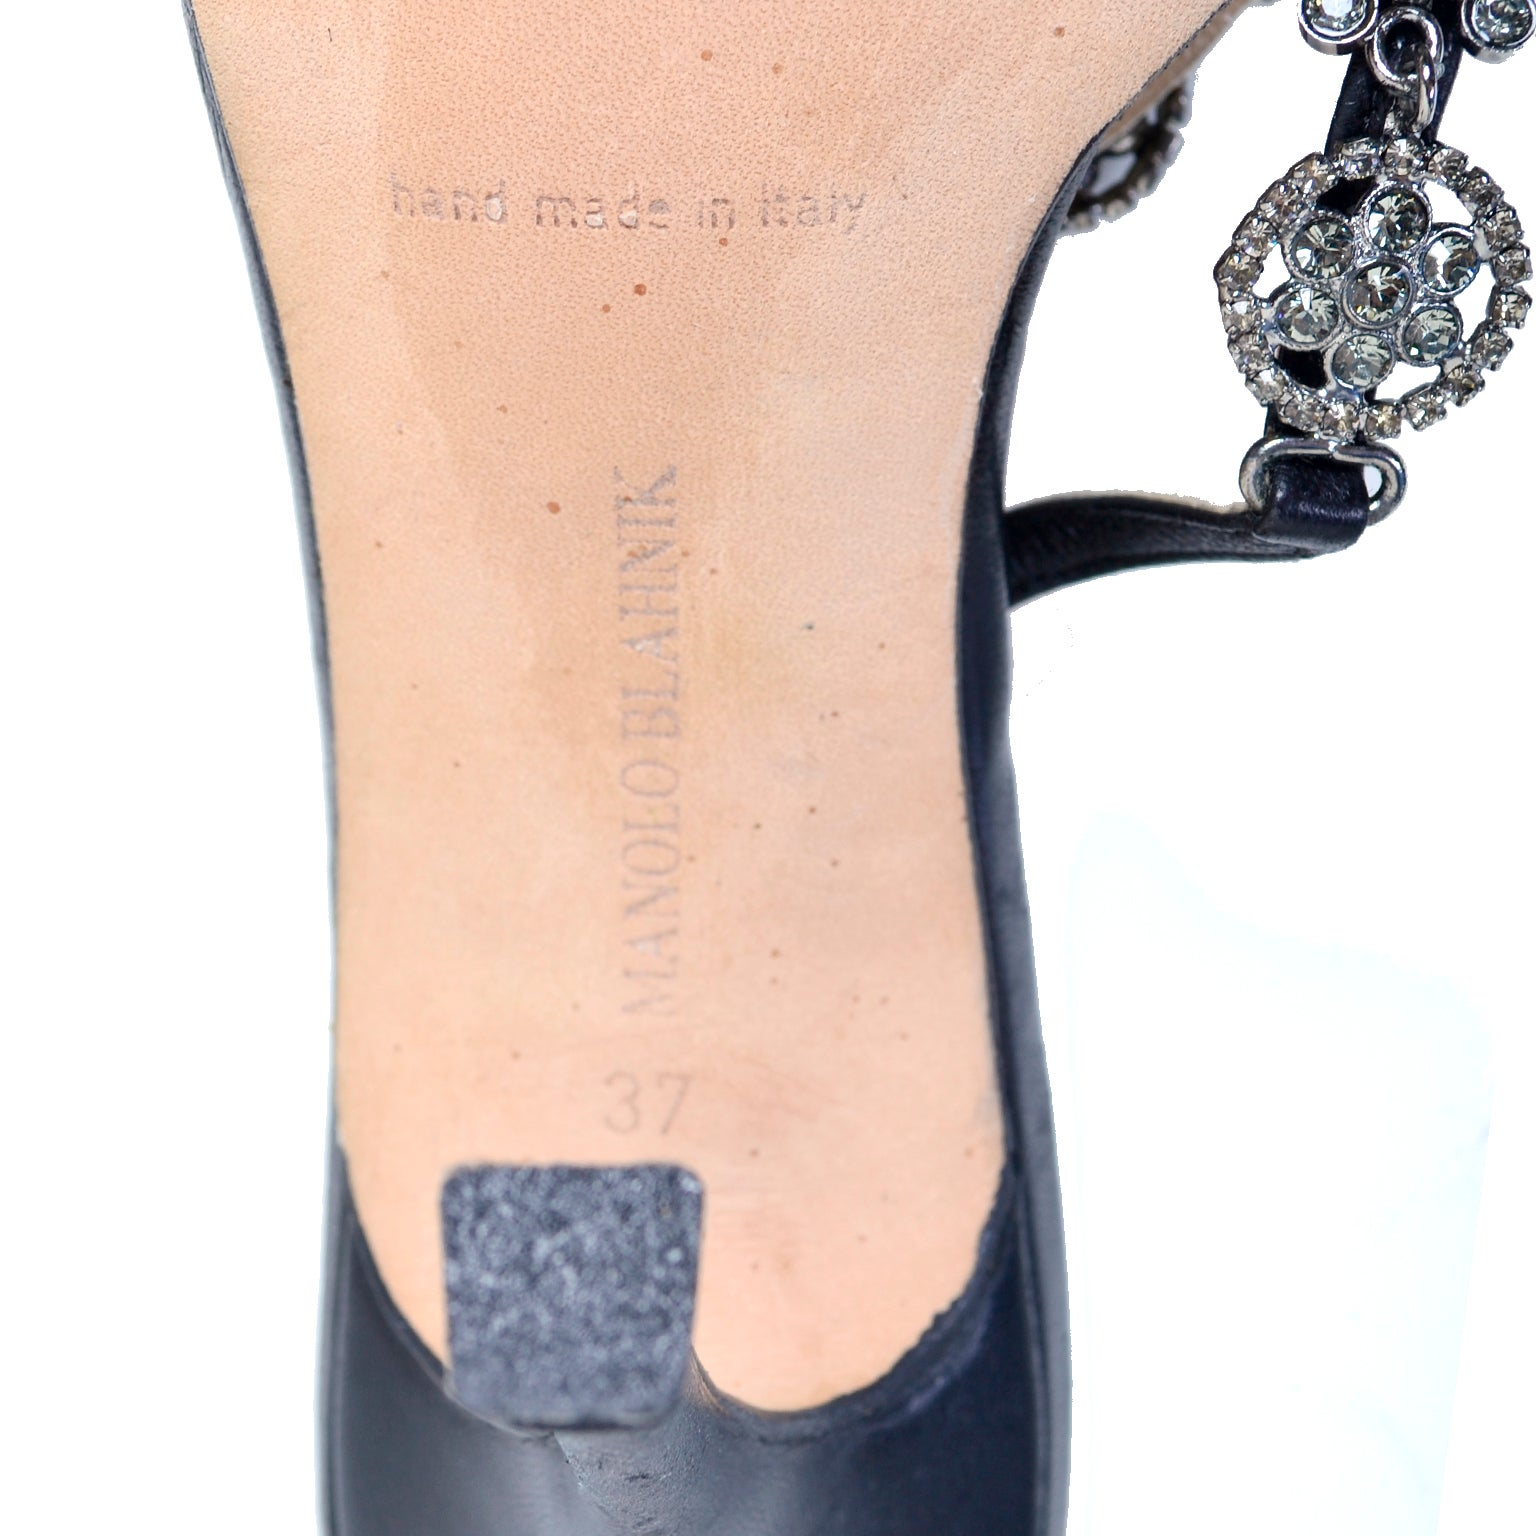 9e05e9891d Rare Manolo Blahnik Shoes Vintage Ankle Strap Heels With Crystals Size 37  For Sale at 1stdibs